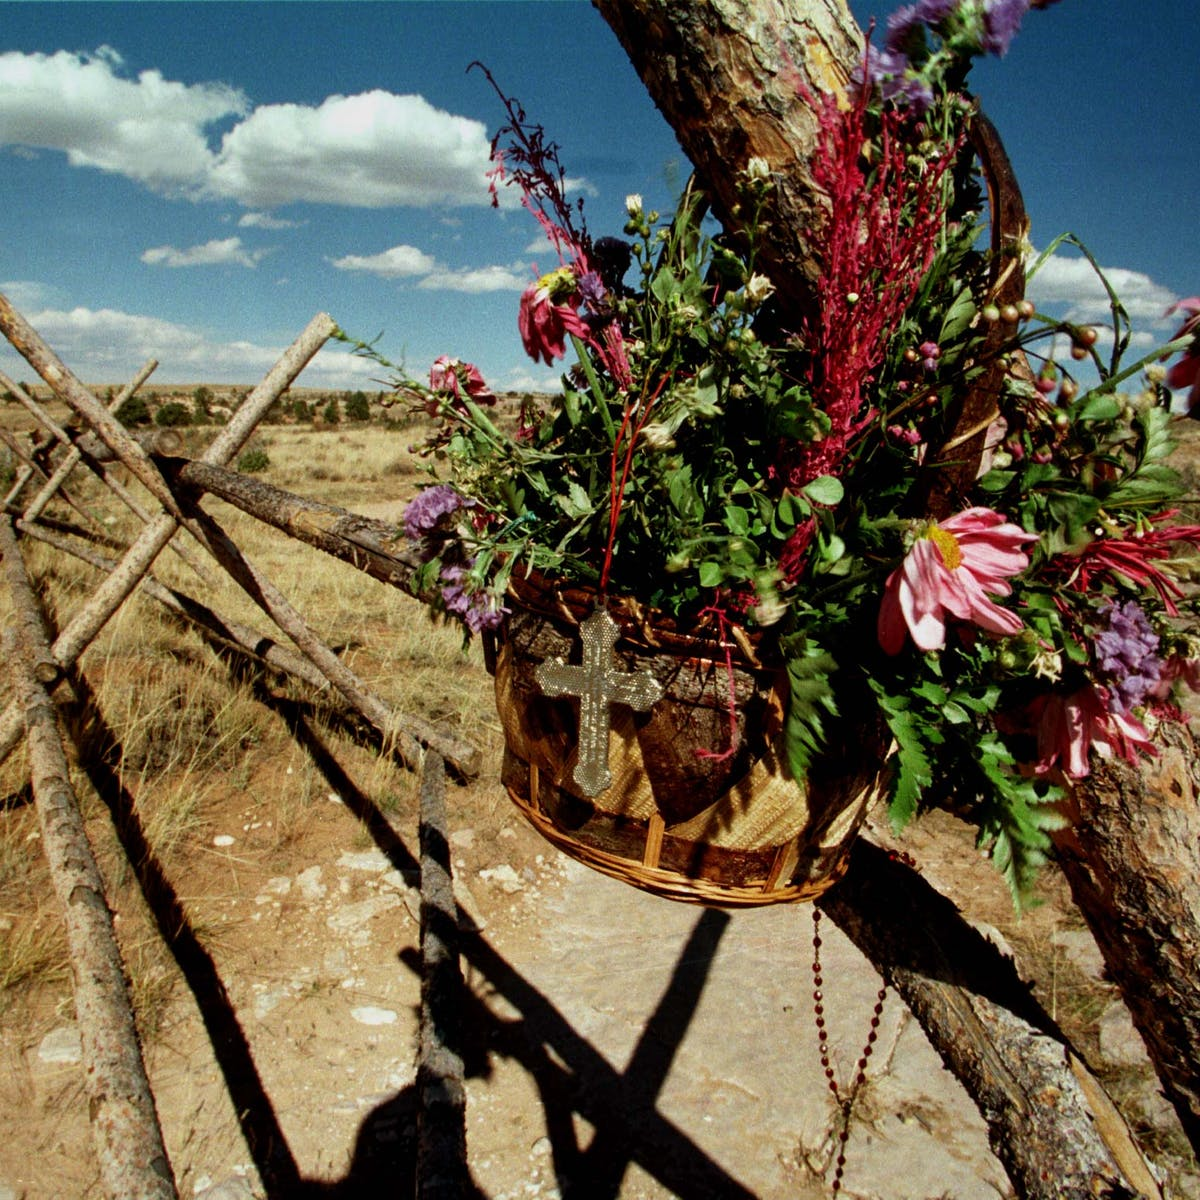 Out of Matthew Shepard's tragic murder, a commitment to